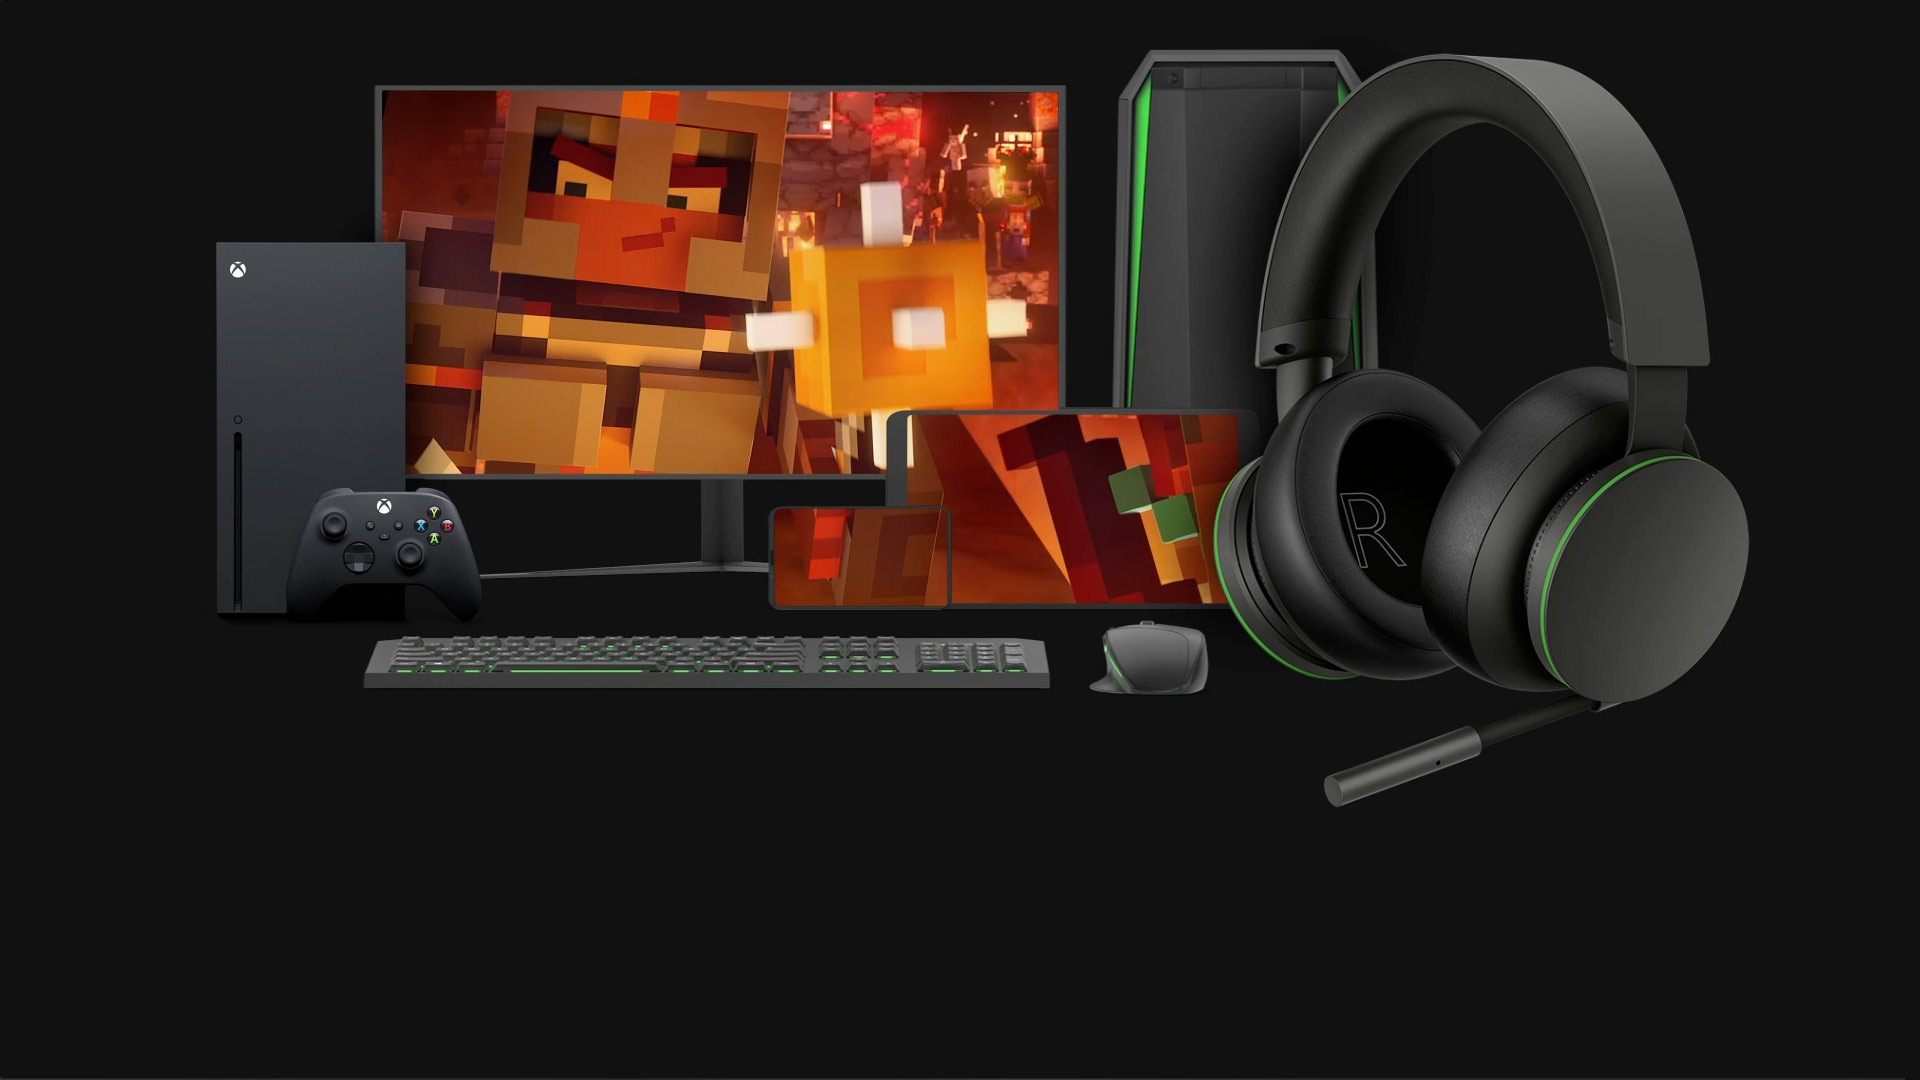 The Xbox Stereo Headset sits in front of a selection of devices it is compatible with, including the Xbox Series X, Windows 10 PC and a mobile device.